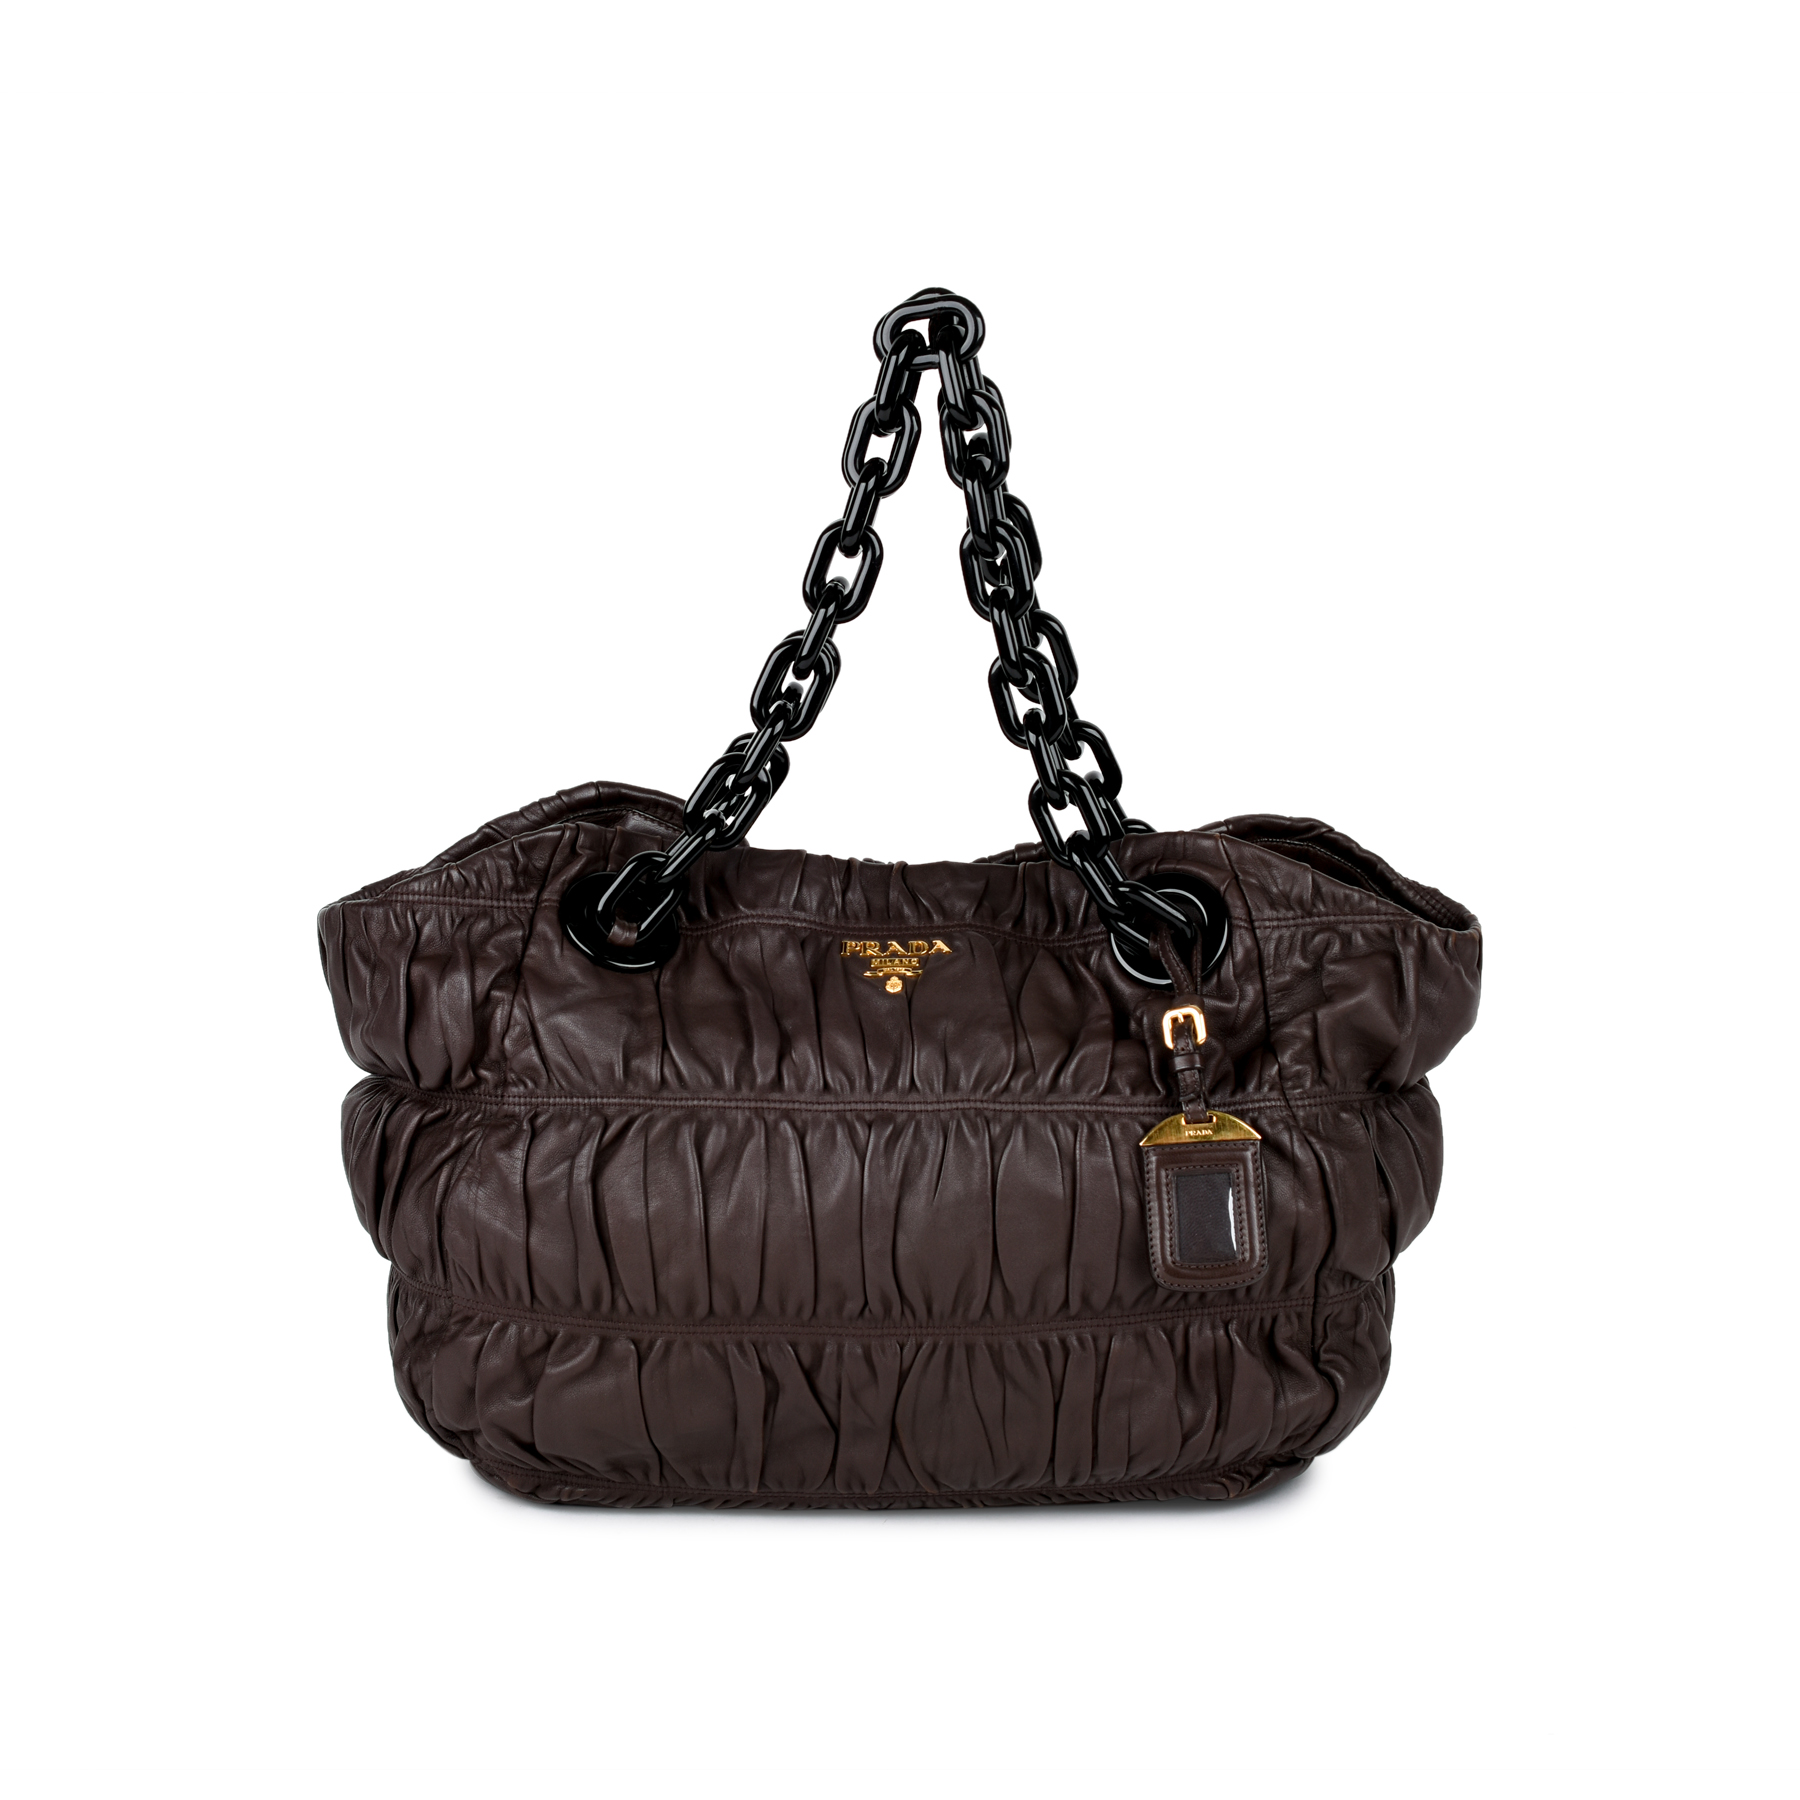 Authentic Pre Owned Prada Nappa Gaufre Shoulder Bag (PSS-434-00001)   THE  FIFTH COLLECTION® c5de4aabcc